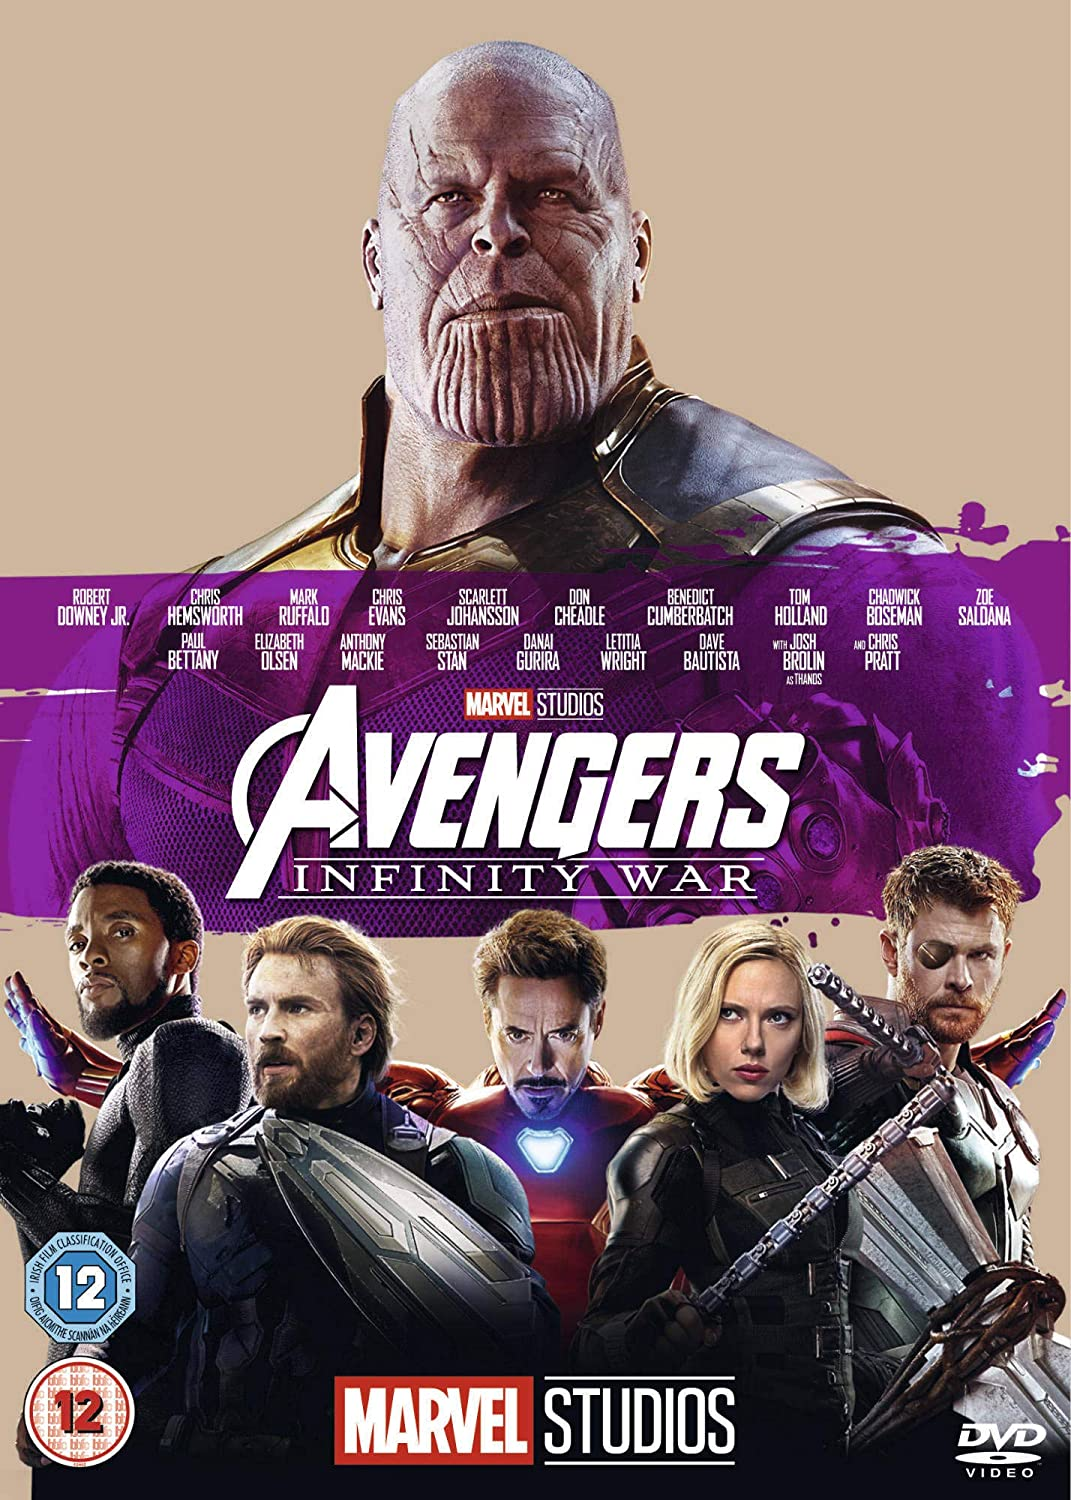 Avengers Infinity War [DVD] [2018]: Amazon co uk: DVD & Blu-ray